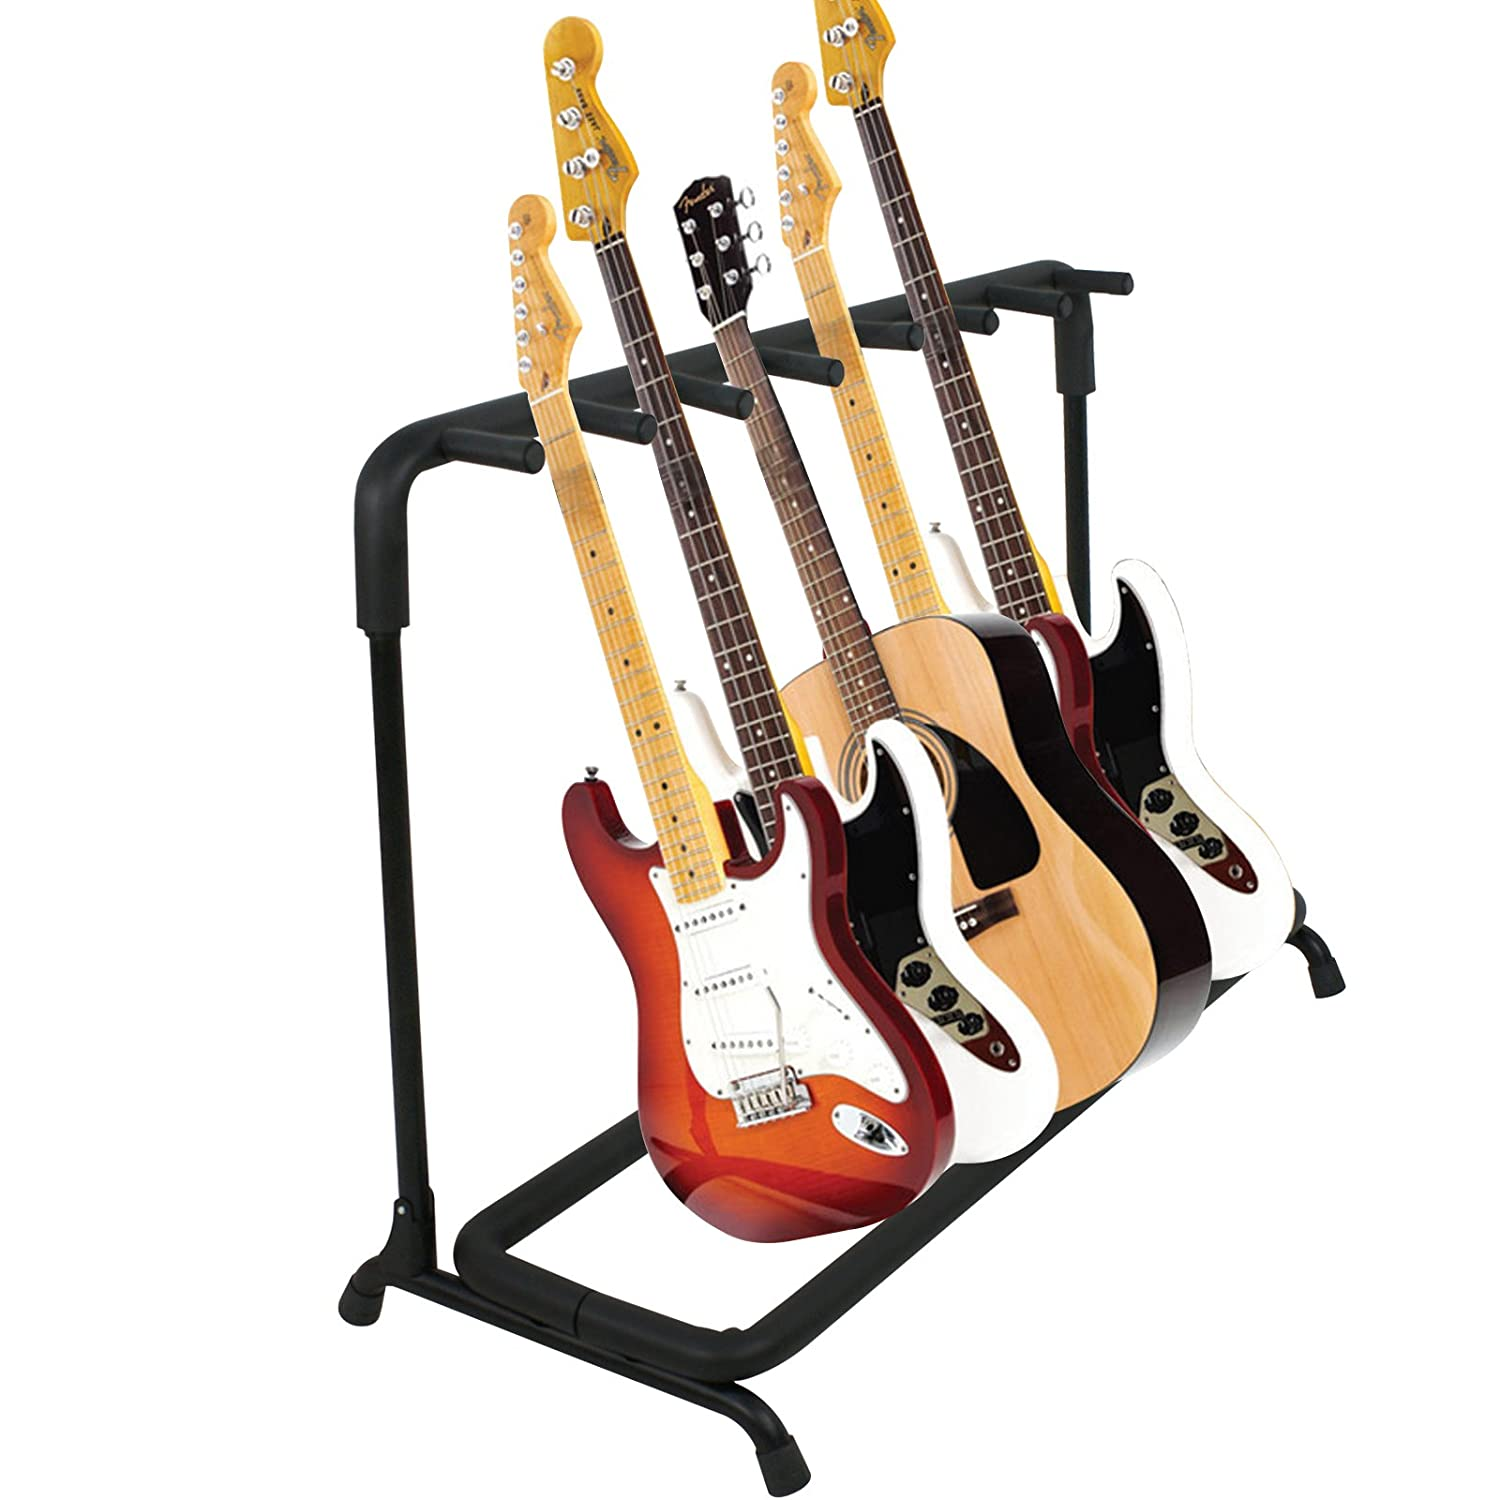 Smartxchoices Guitar Stand Black 7 Holder Folding Steel Stand Rack for Multiple Acoustic Electric Guitars Basic Bass, Display Storage Organizer Band Stage